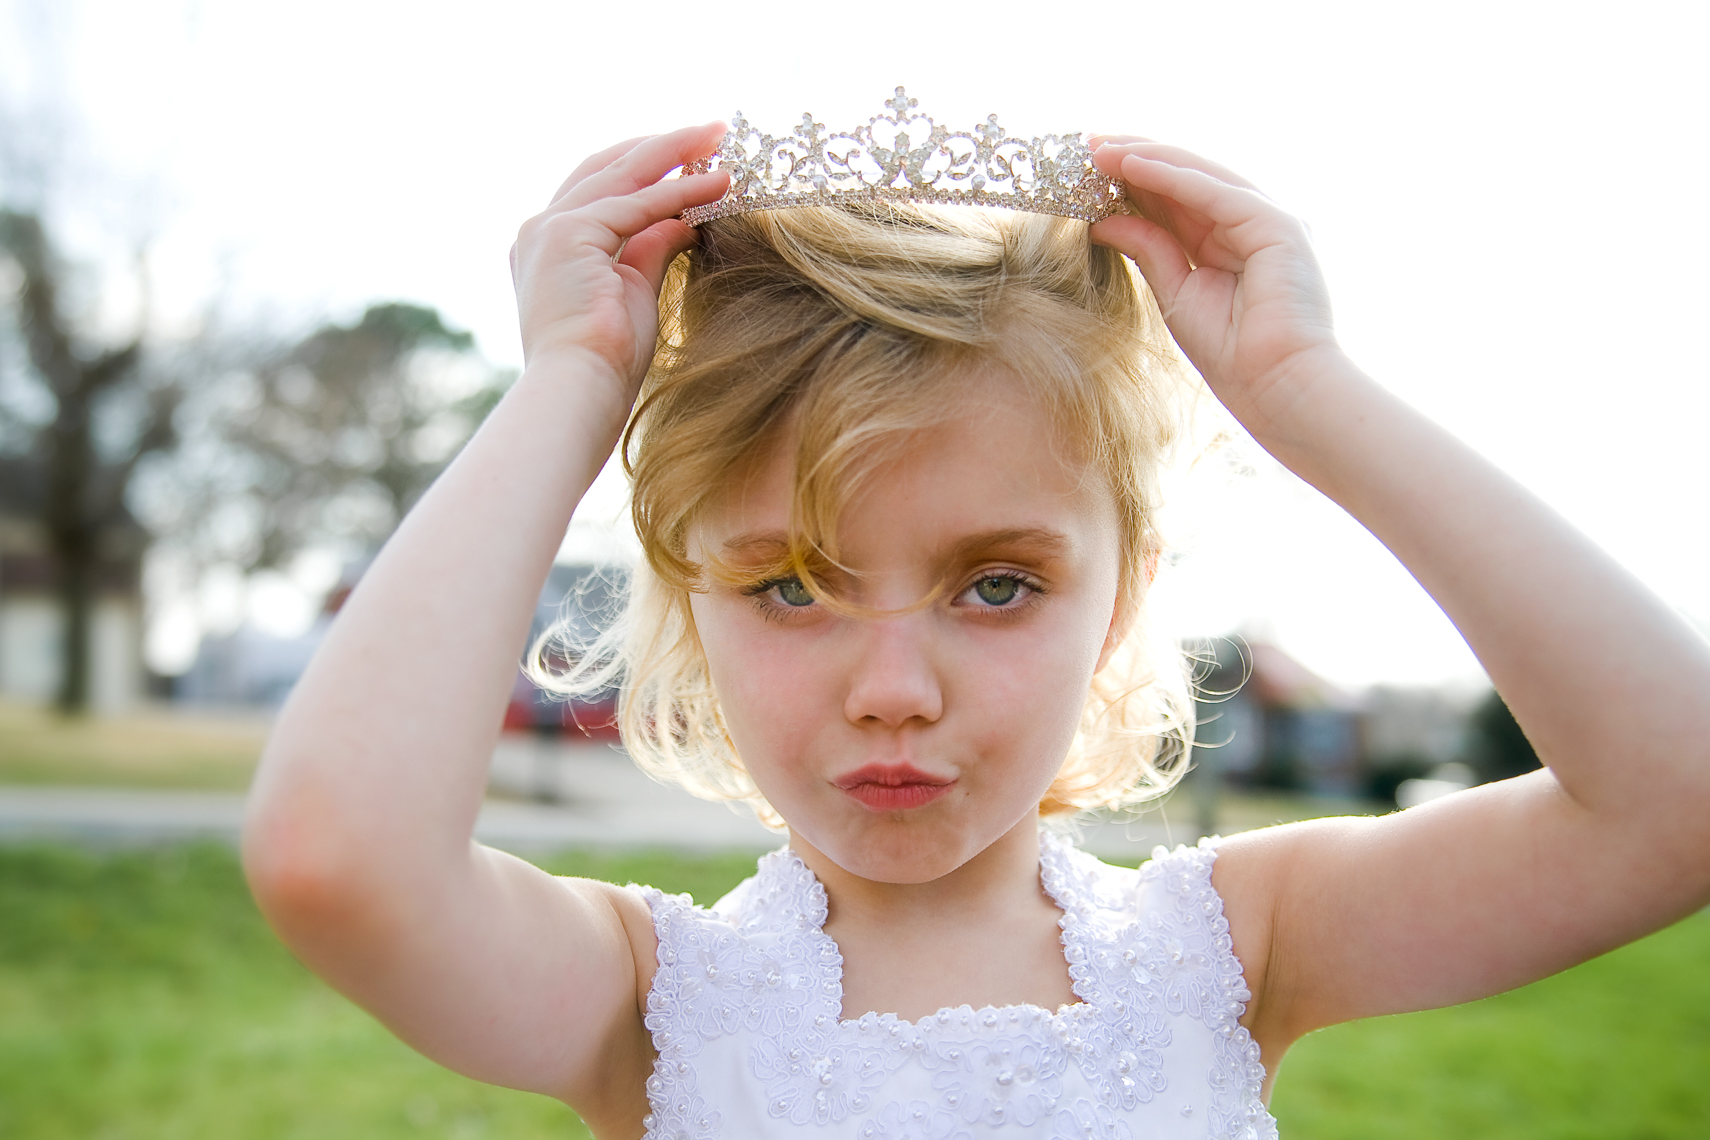 Young girl playing dress-up in a tiara and white gown in her front yard, authentic, children, child, sassy, playful, Nashville, editorial, advertising, photographer